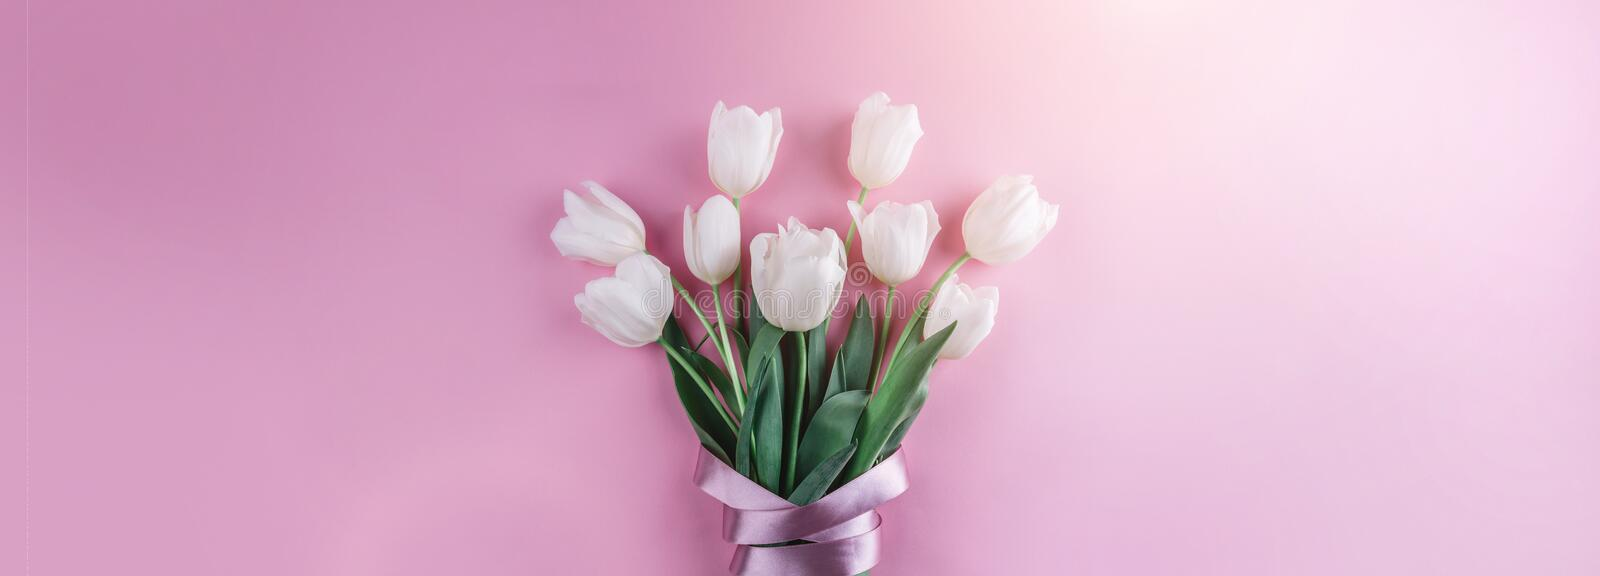 Bouquet of white tulips flowers on pink background. Card for Mothers day, 8 March, Happy Easter. Waiting for spring. Greeting card or wedding invitation. Flat stock images